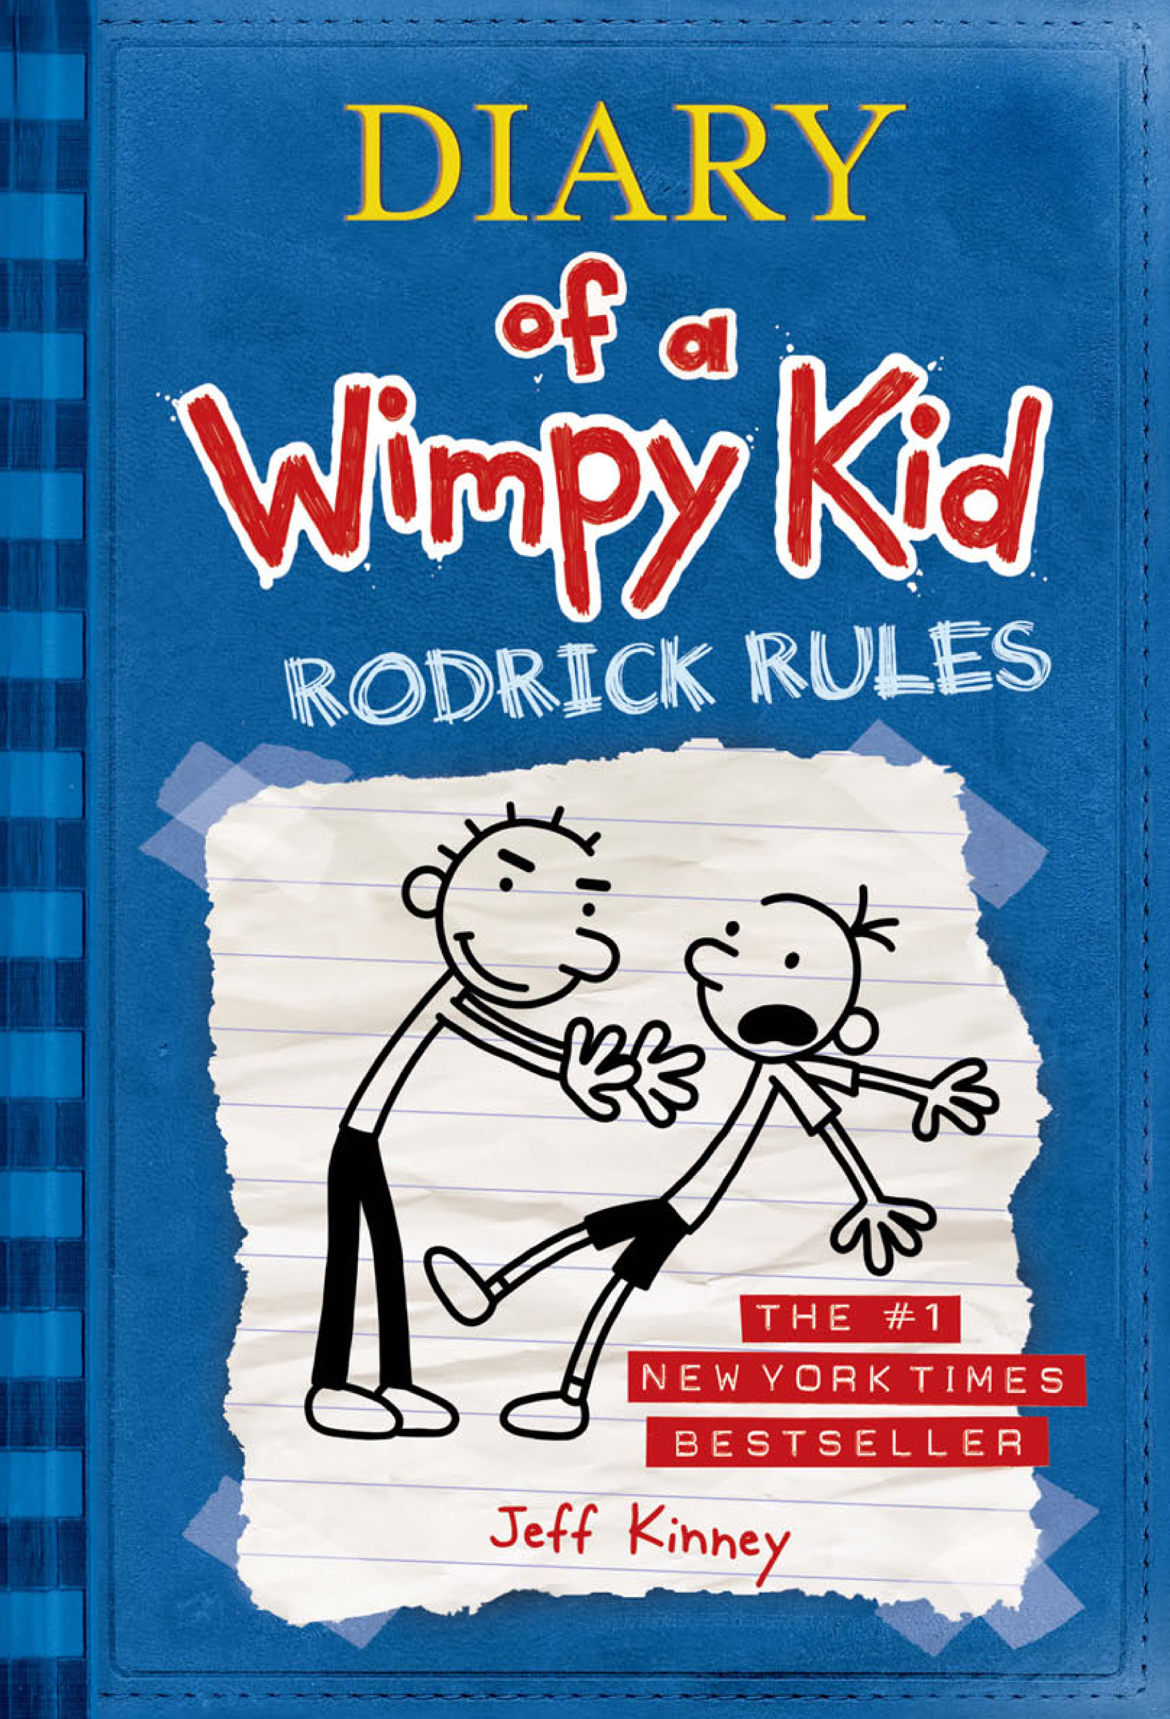 Cover Image of Rodrick Rules (Diary of a Wimpy Kid #2)